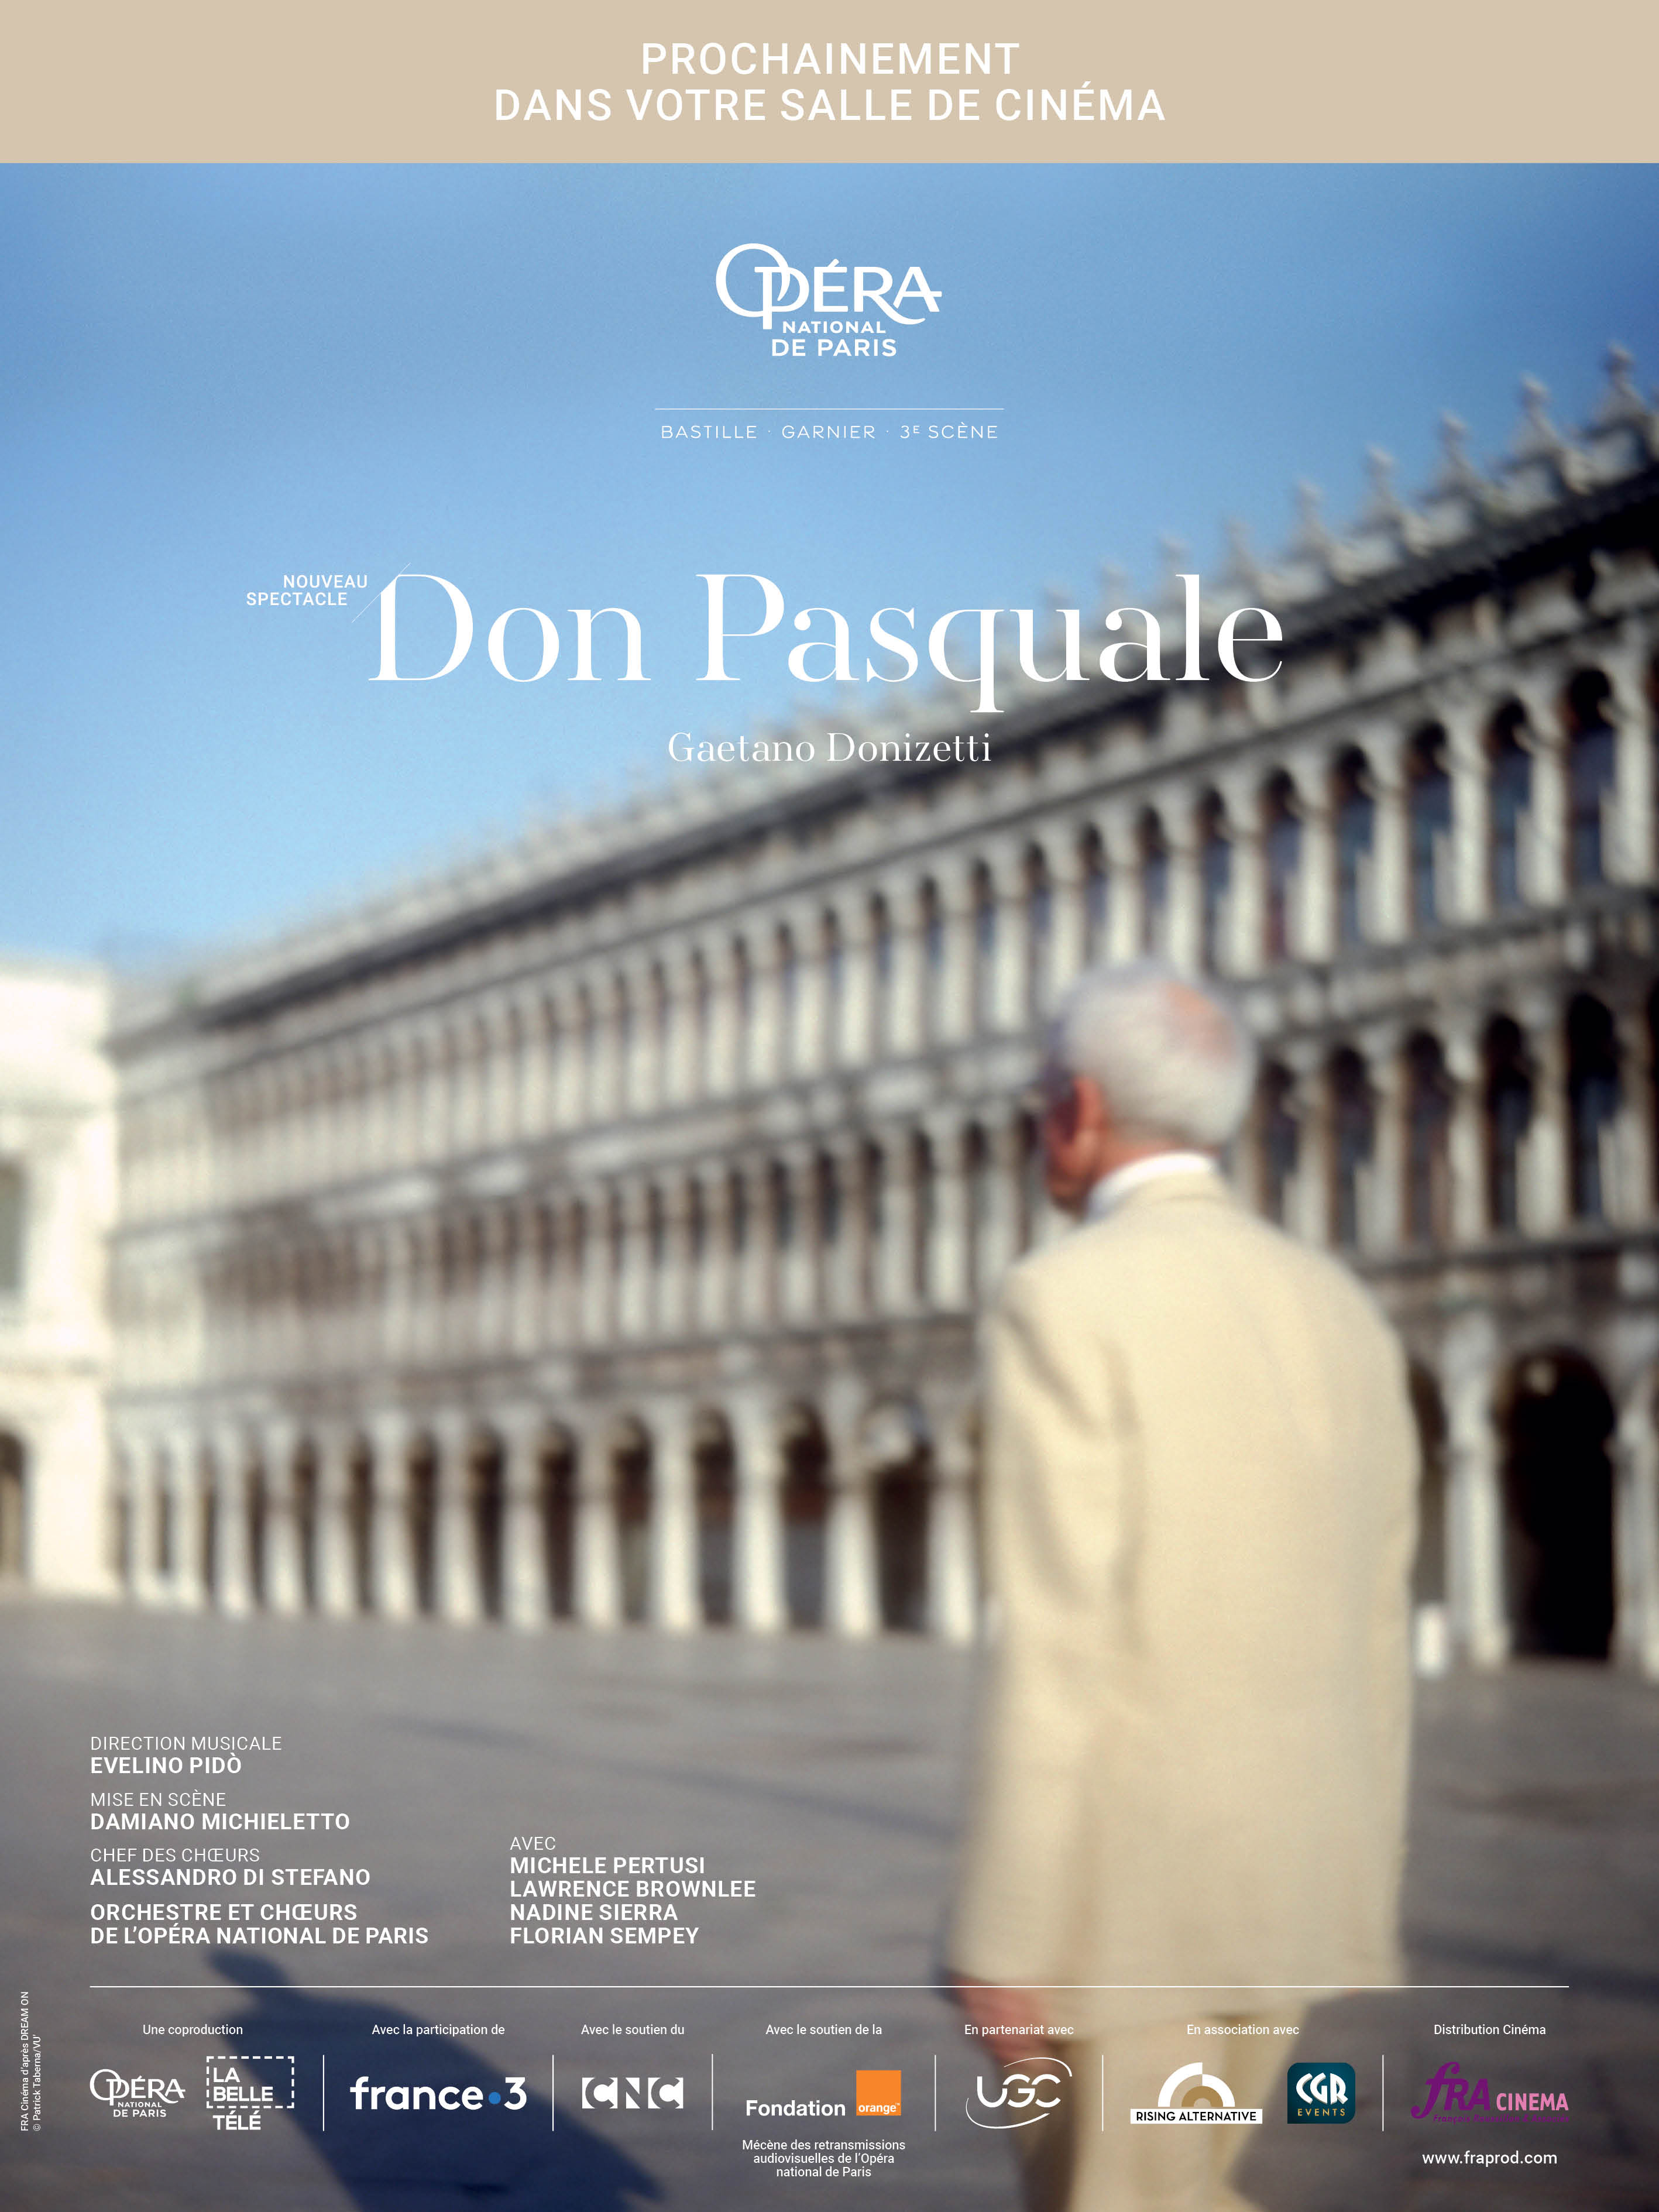 CINÉSPECTACLE: DON PASQUALE